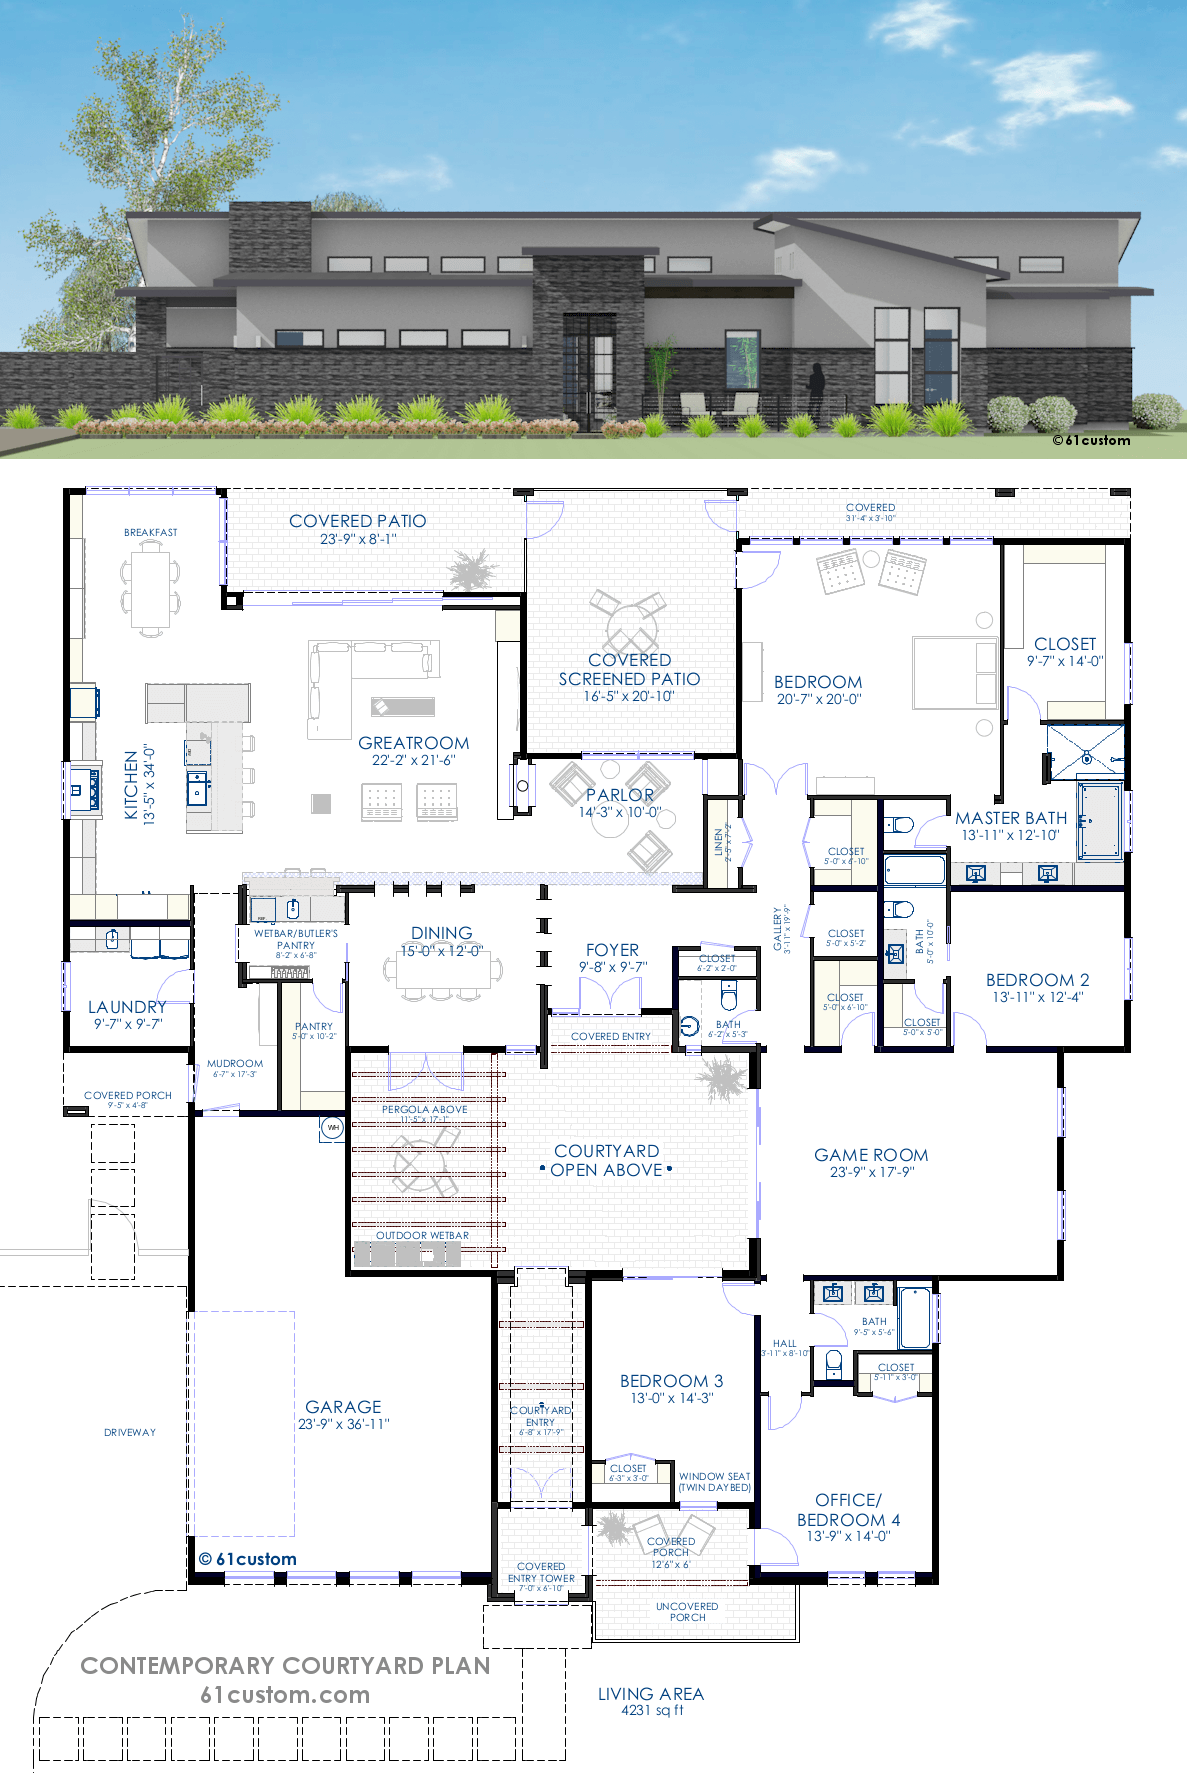 Contemporary courtyard house plan 61custom modern for Blueprint home plans